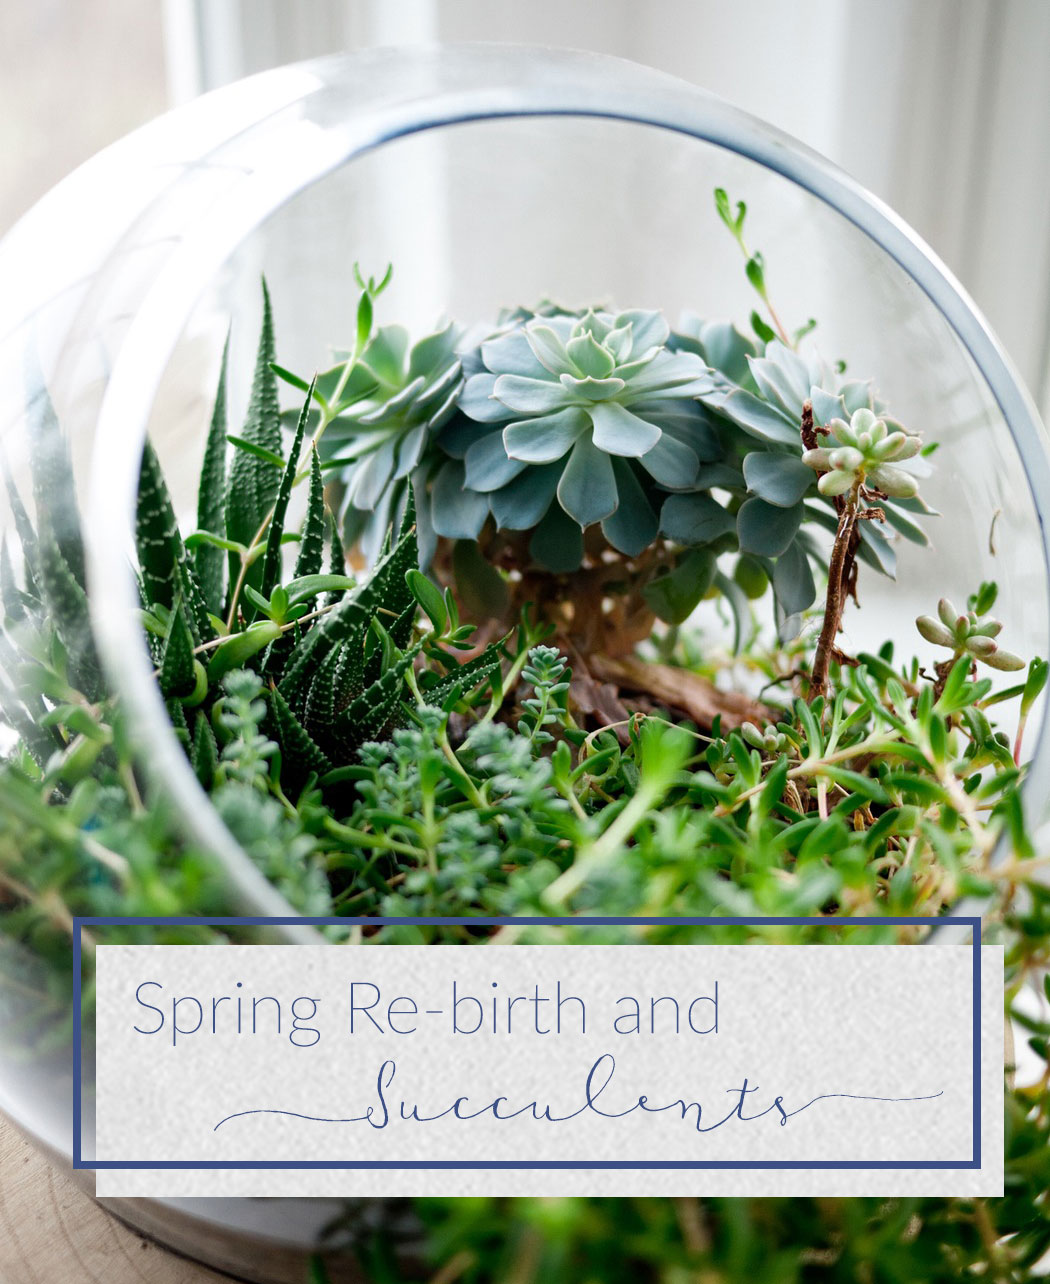 Spring Re-birth and Succulents